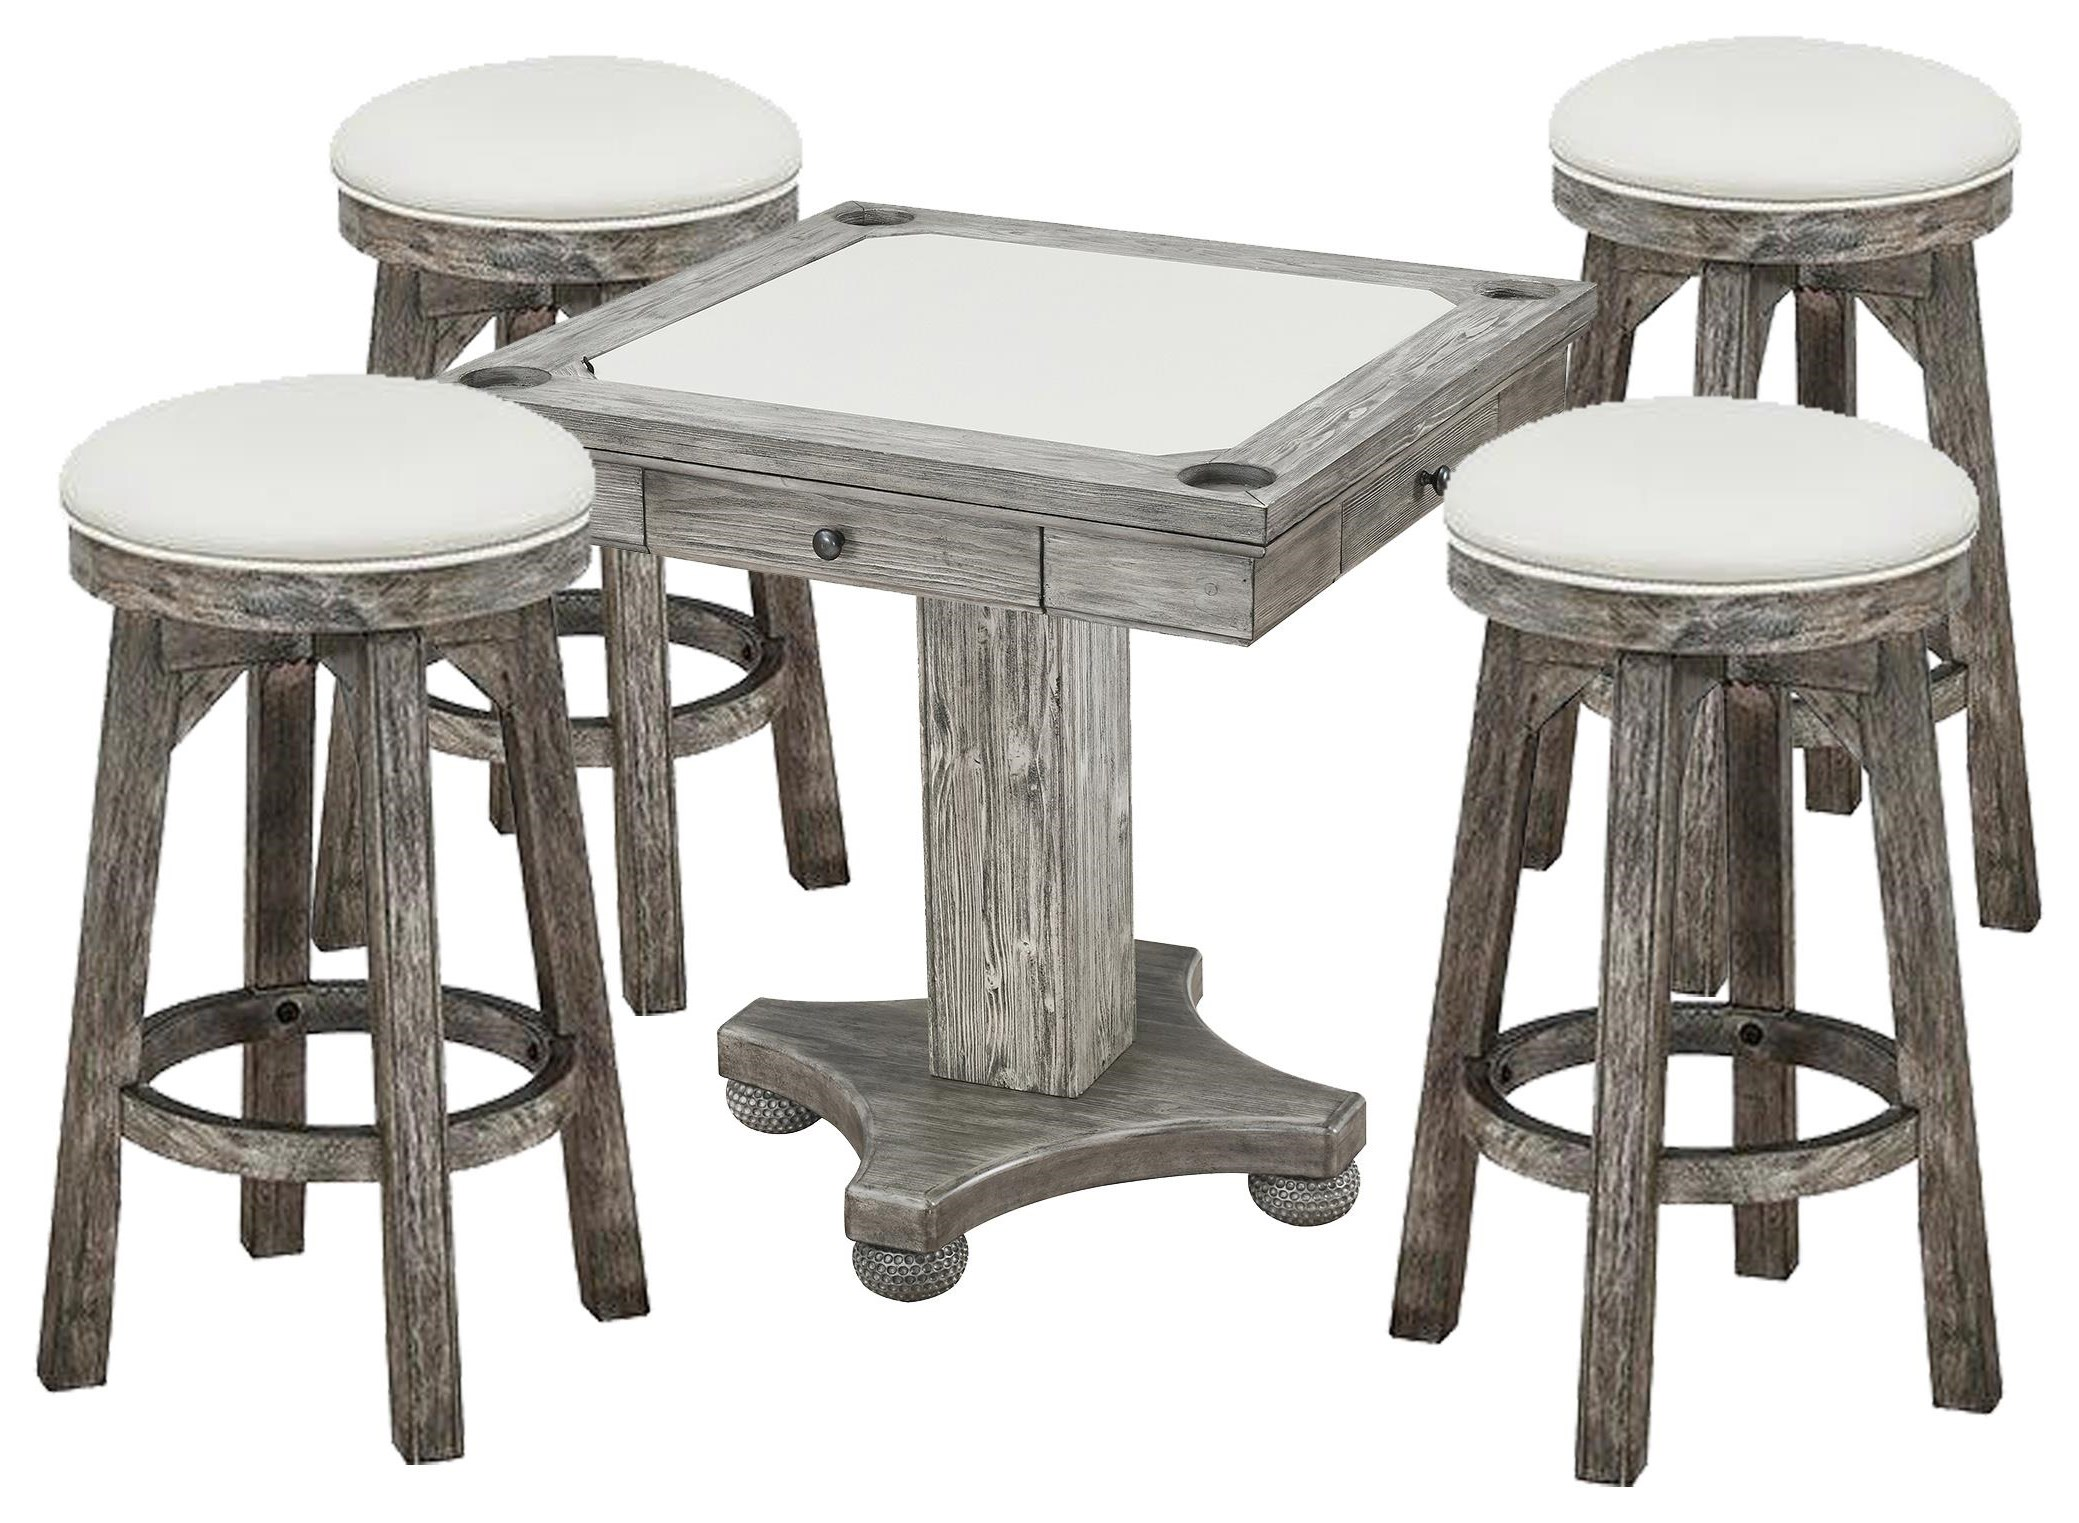 Bars Bar Game Table and Stools by E.C.I. Furniture at Johnny Janosik